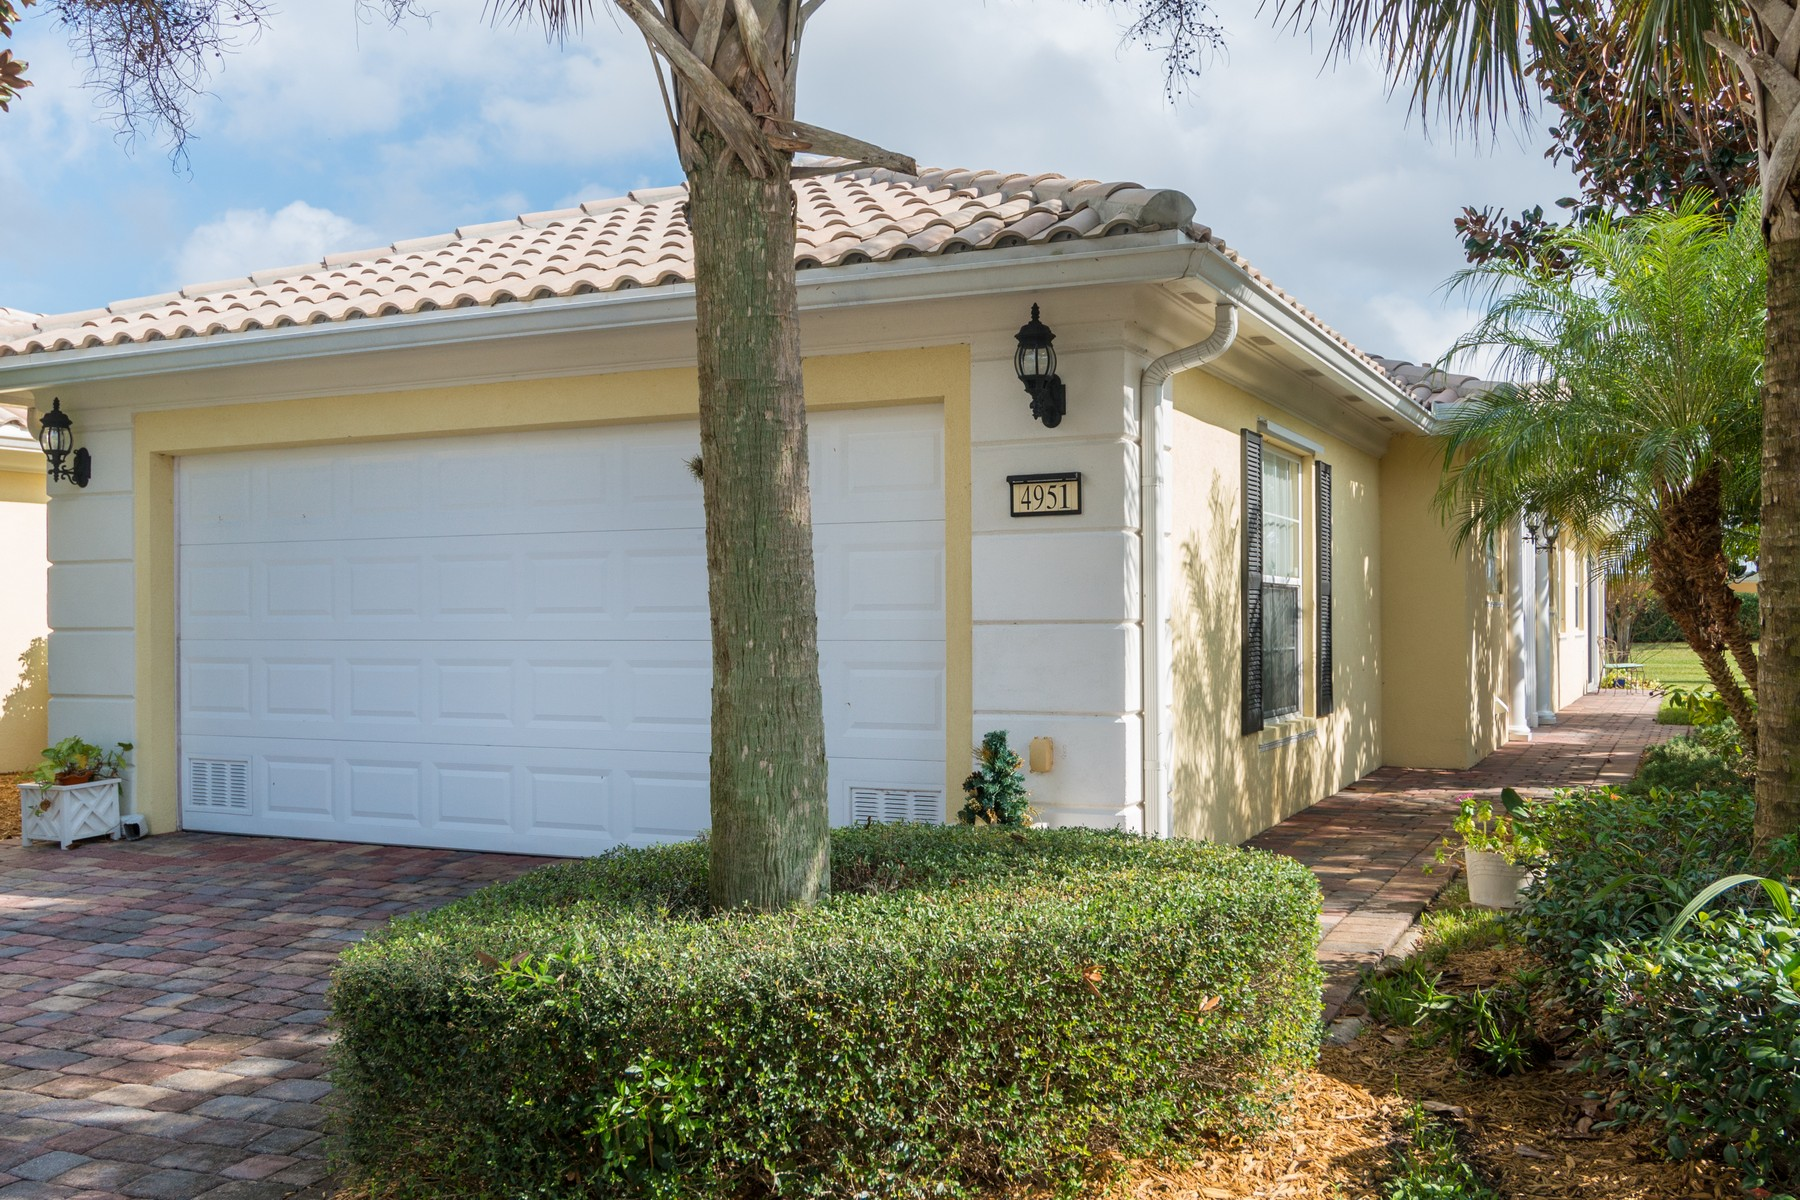 Single Family Home for Sale at Plush Home with 2 Suites 4951 Corsica Sq Vero Beach, Florida, 32967 United States